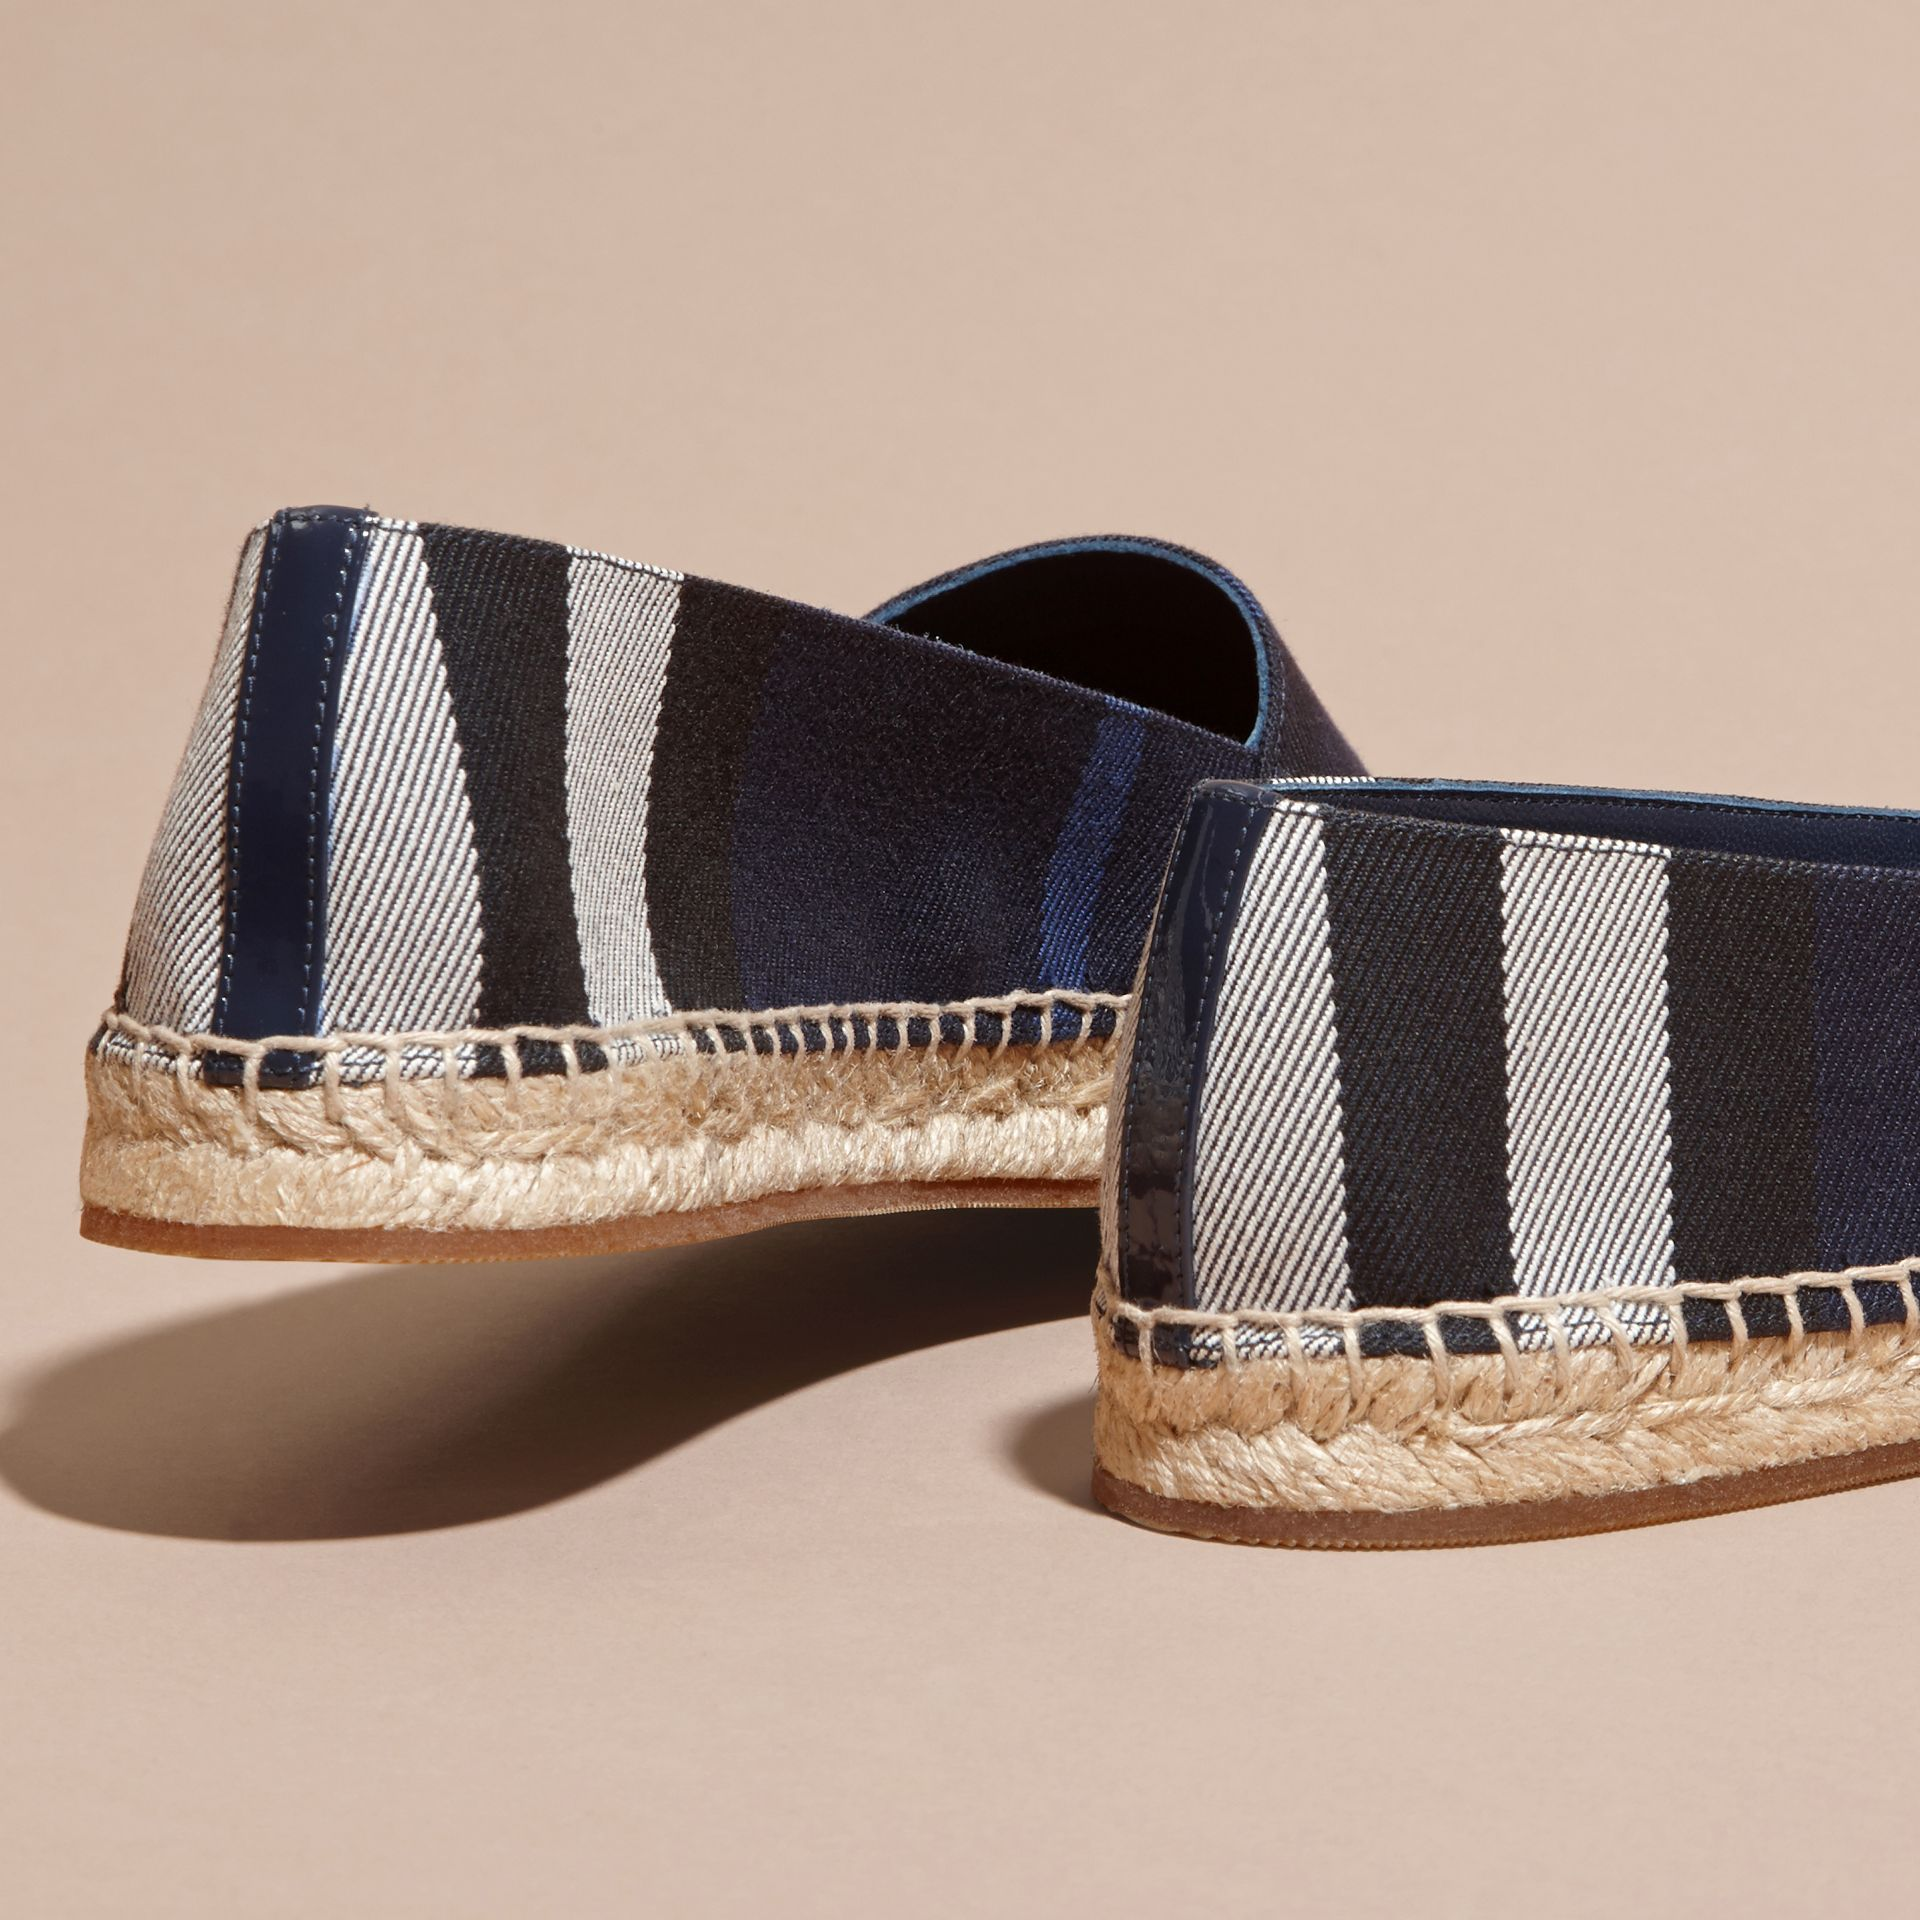 Leather Trim Canvas Check Espadrilles in Indigo Blue - Women | Burberry - gallery image 4